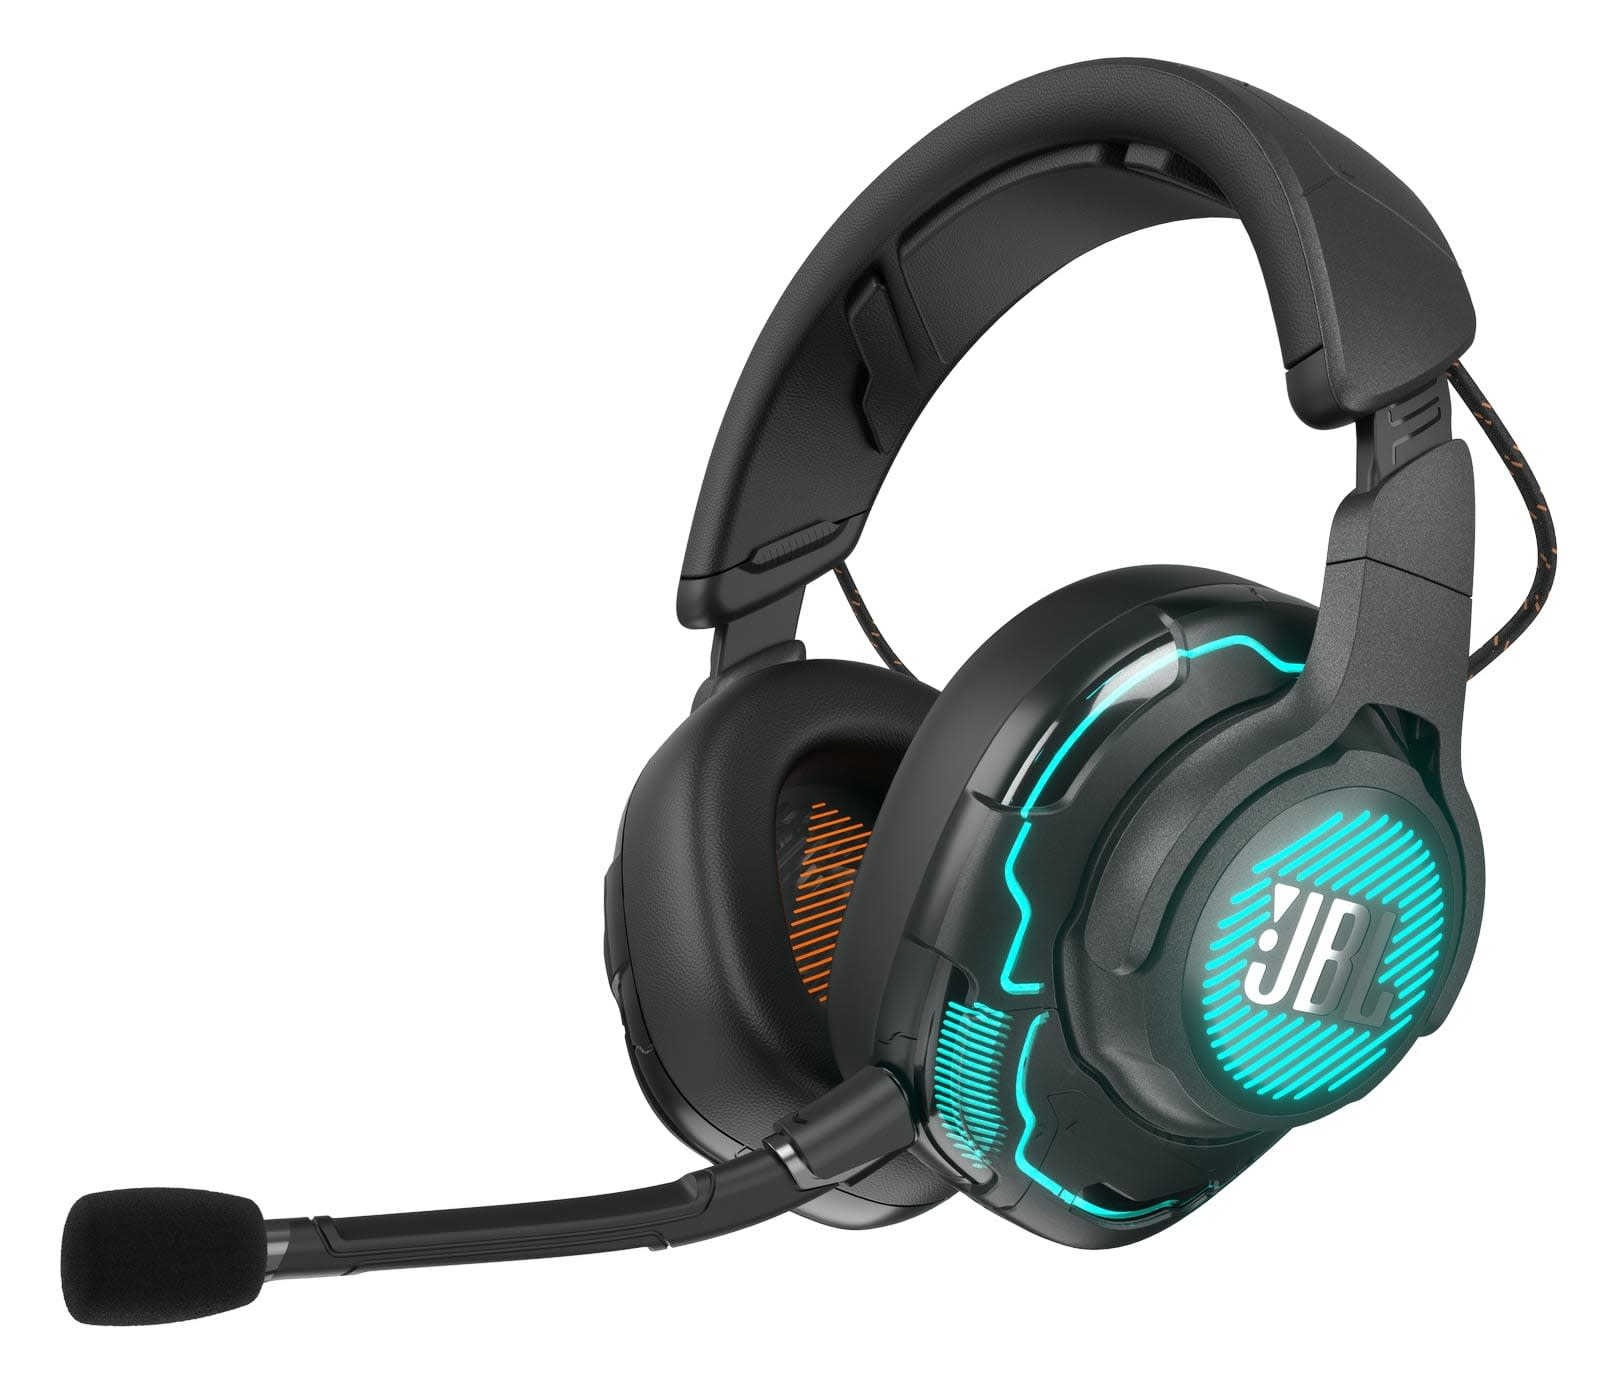 JBL Quantum Gaming headphones and speaker